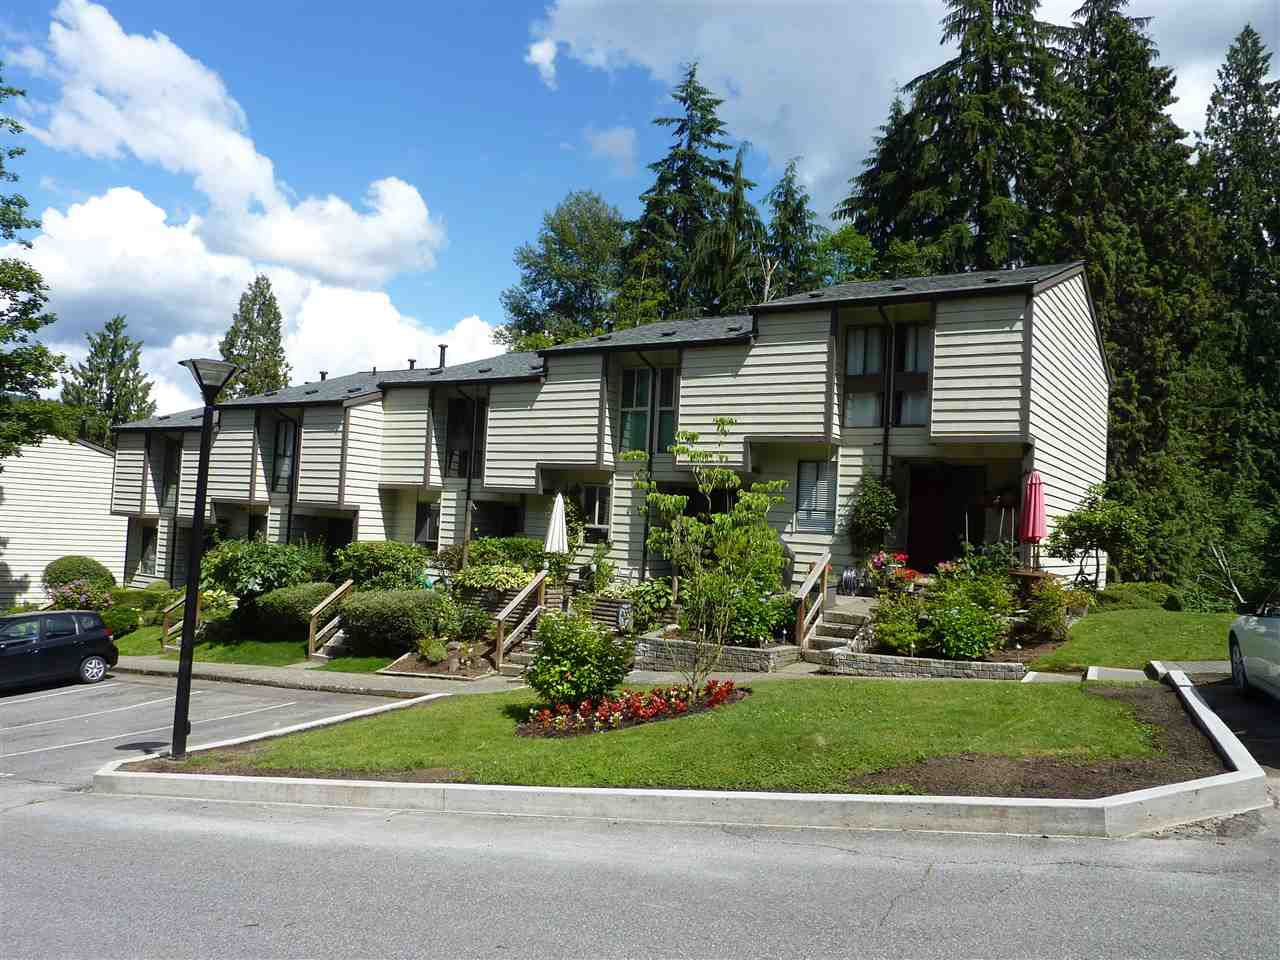 Main Photo: 142 BROOKSIDE DRIVE in Port Moody: Port Moody Centre Townhouse for sale : MLS®# R2081565